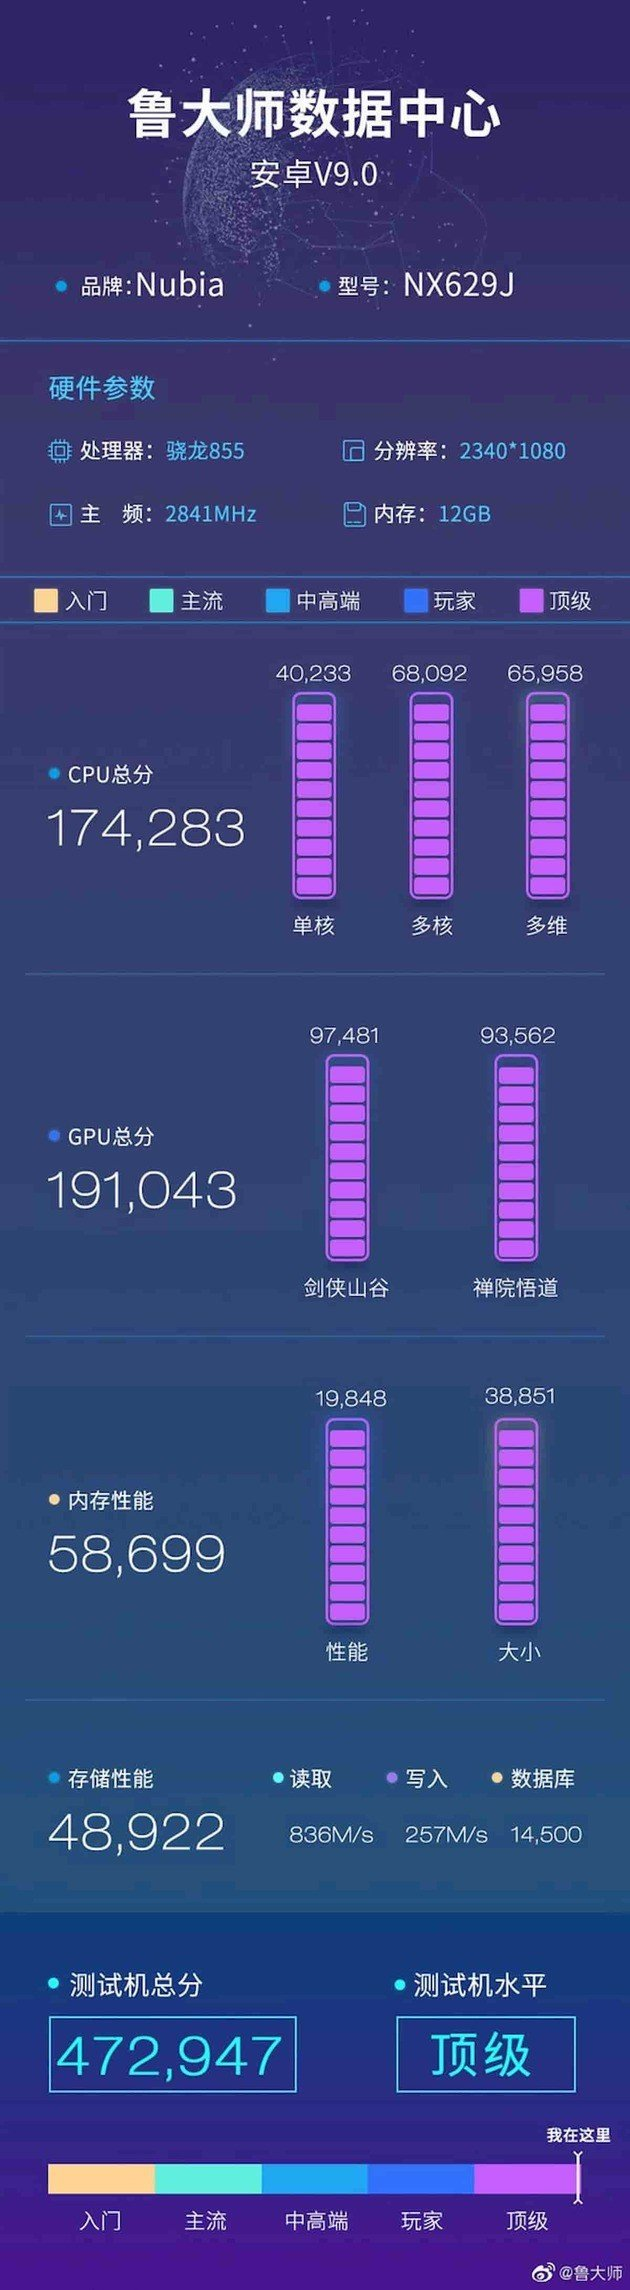 nubia red magic 3 benchmark master lu